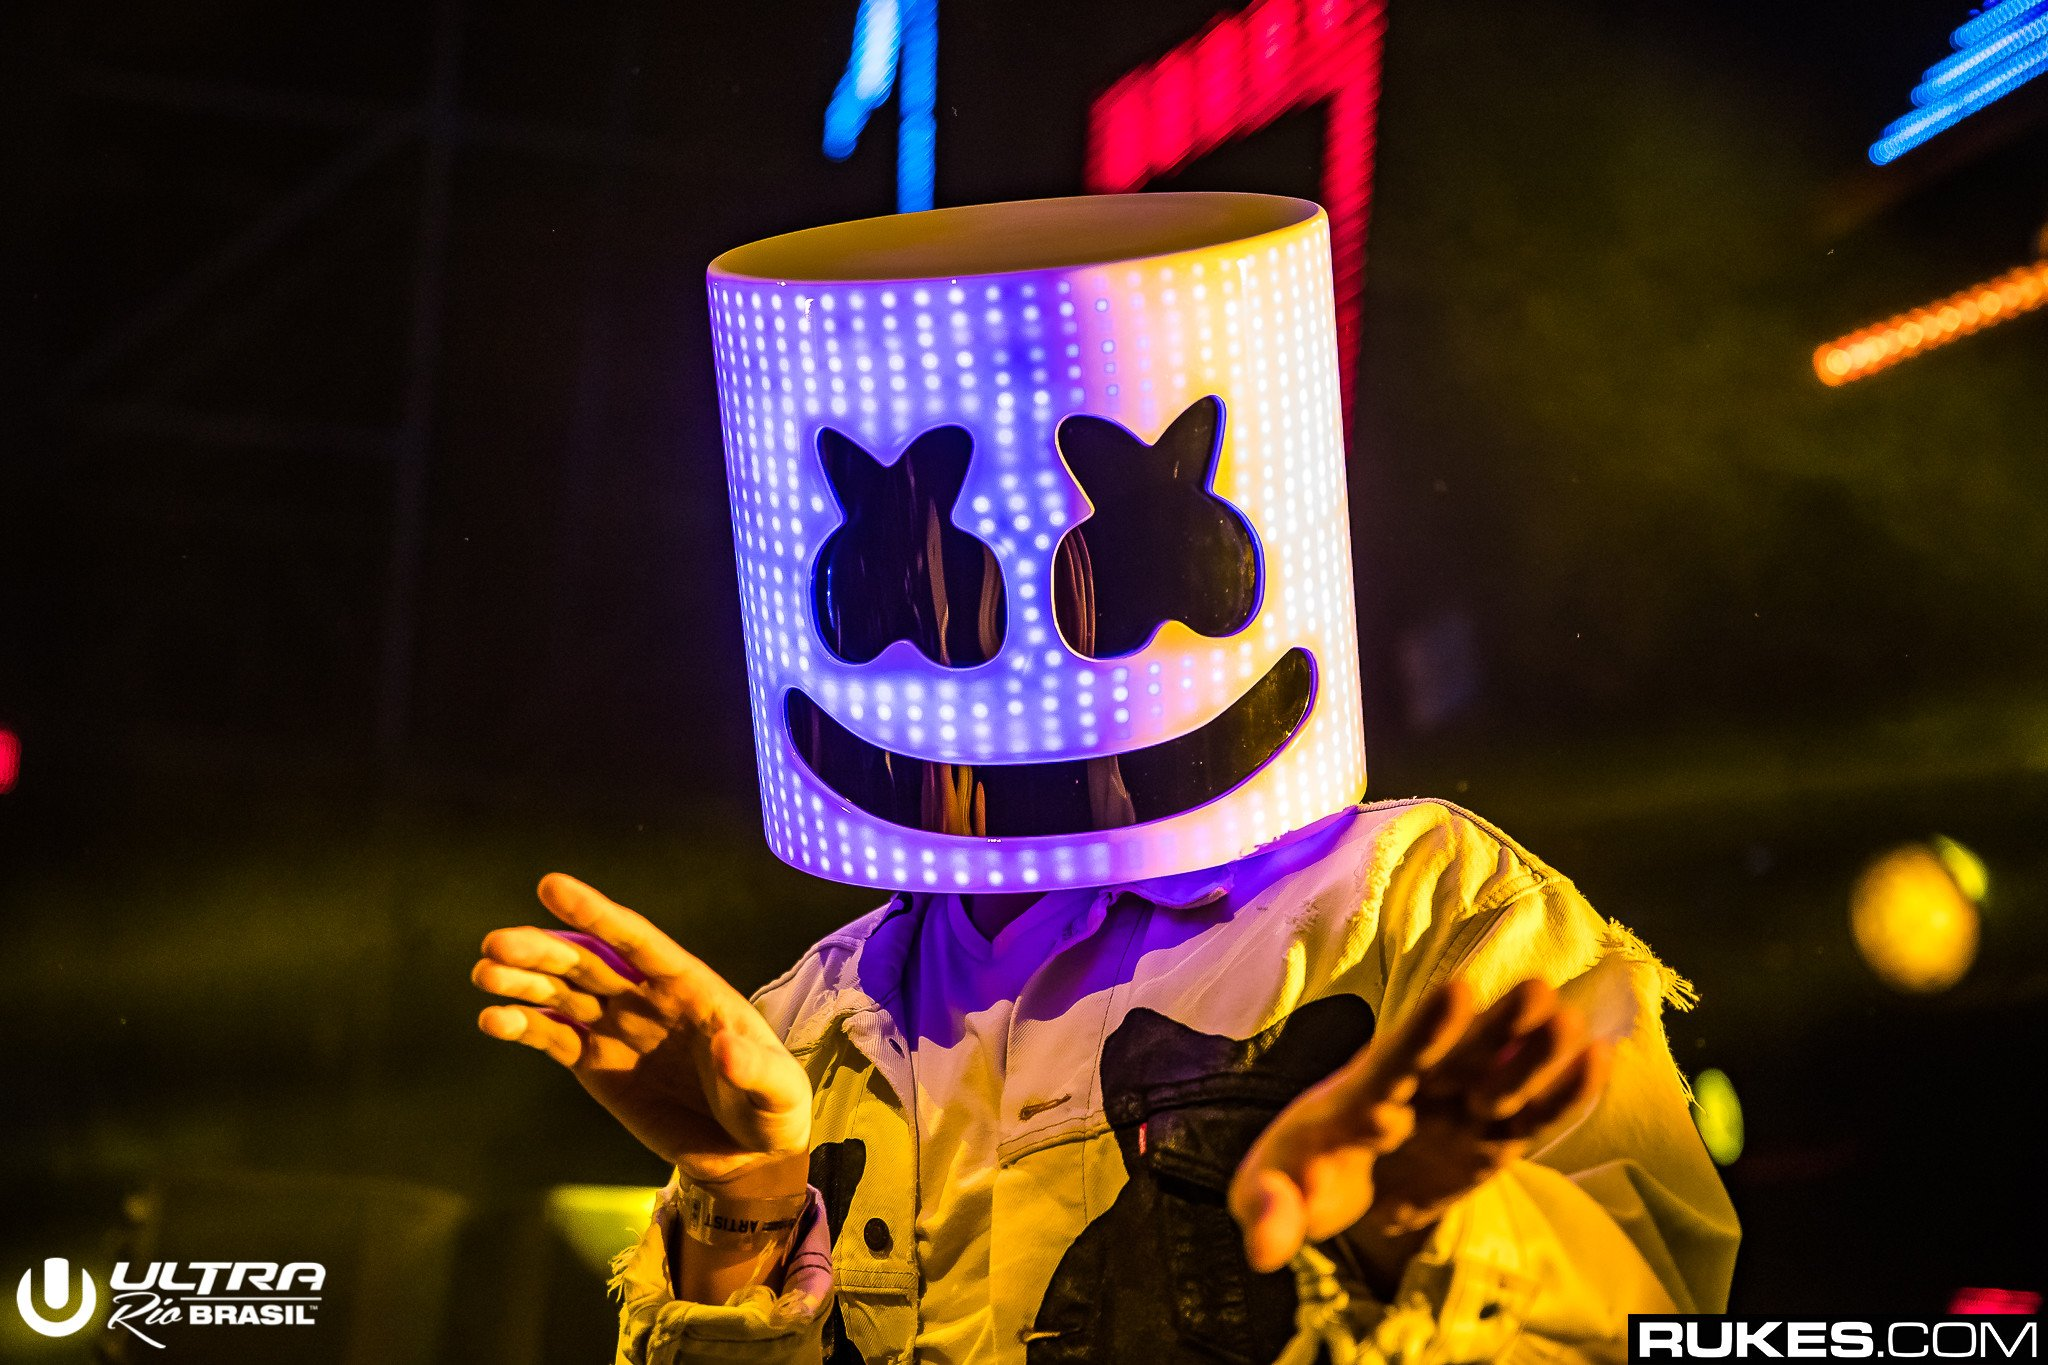 Marshmello Confirmed Here Is The Mystery DJs True Identity